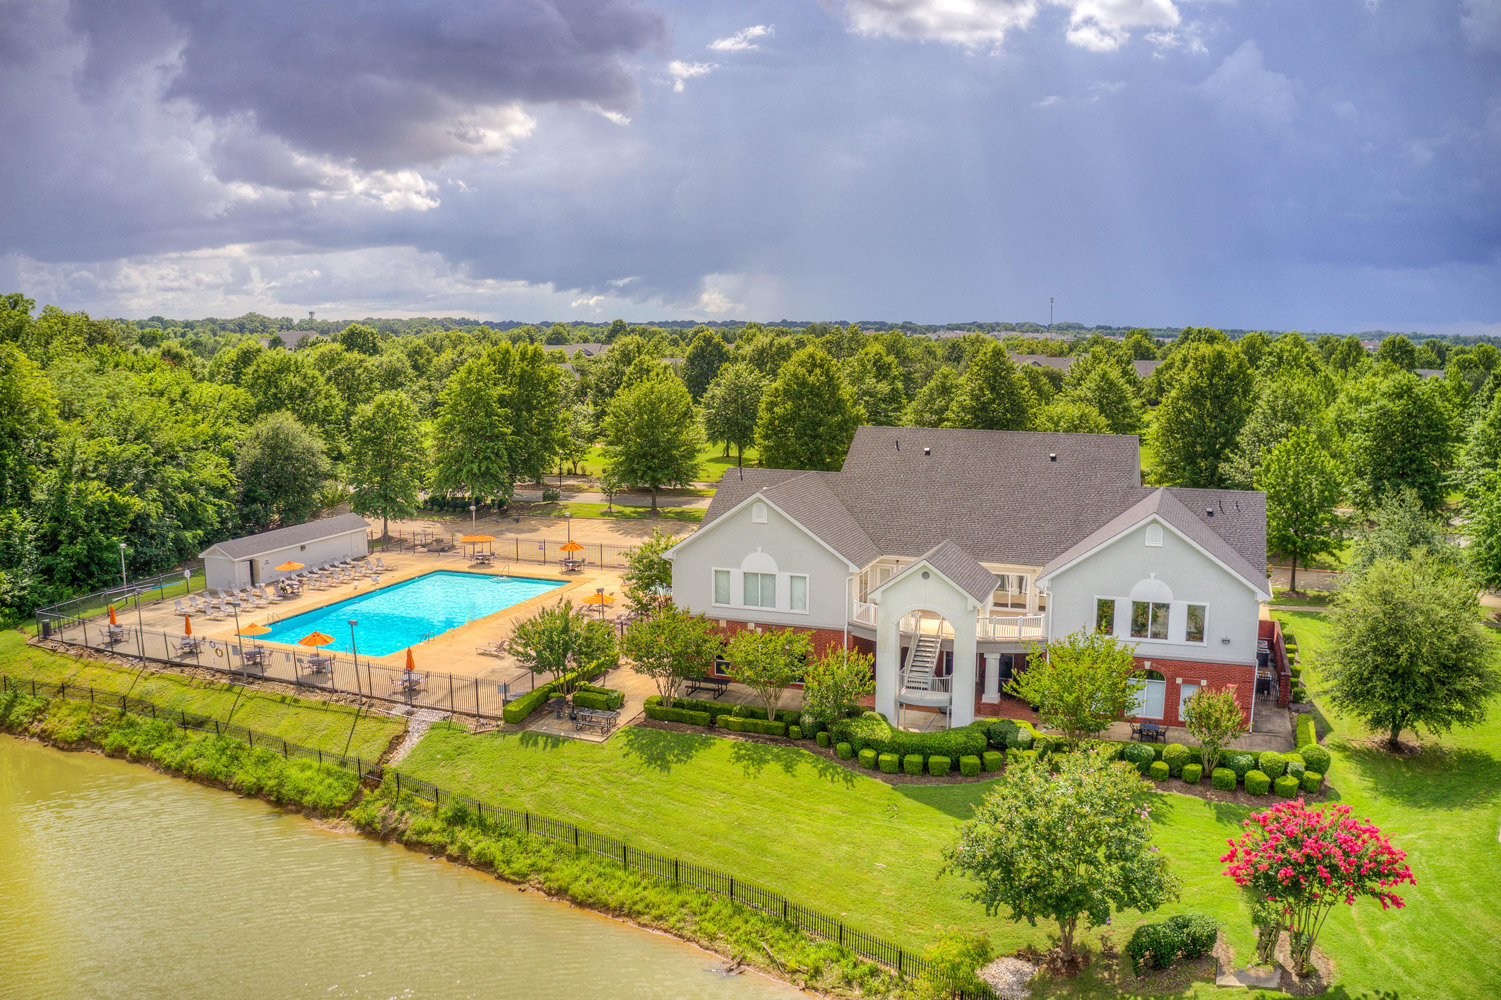 Lush Escape from the City at The Park at Forest Hill Apartments in Memphis, Tennessee